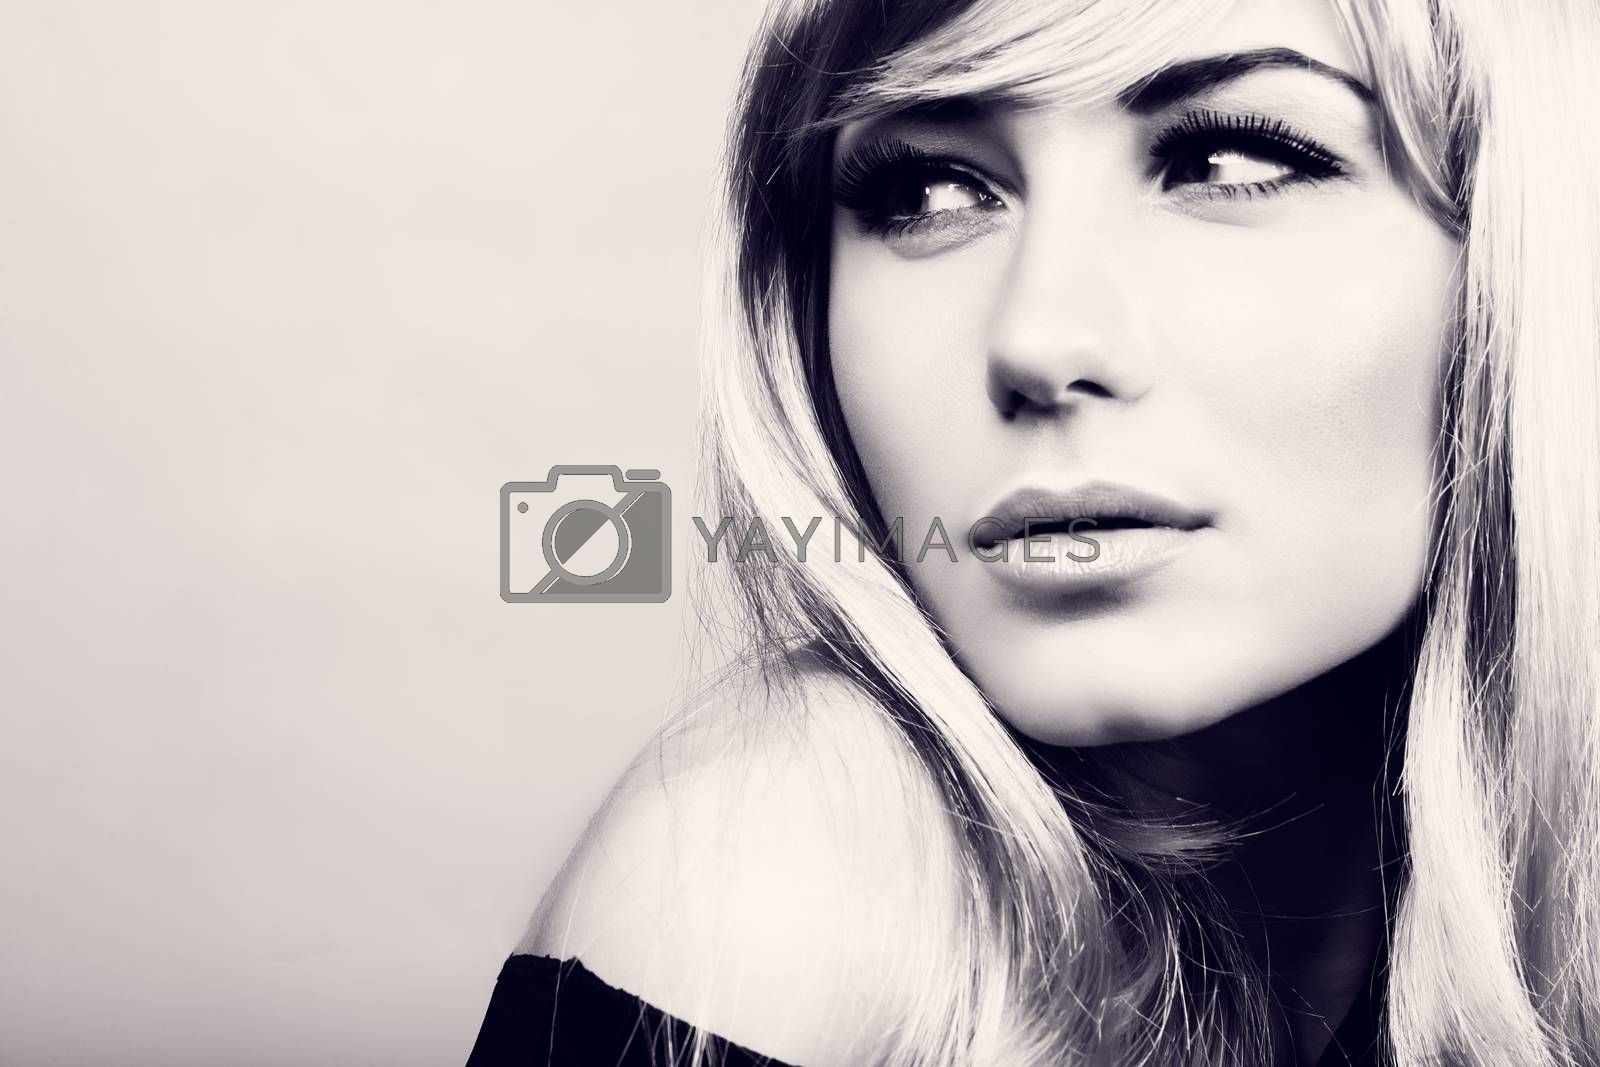 Closeup portrait of a gorgeous blond model, fashion look, beautiful makeup and hairstyle, black and white photo with copy space